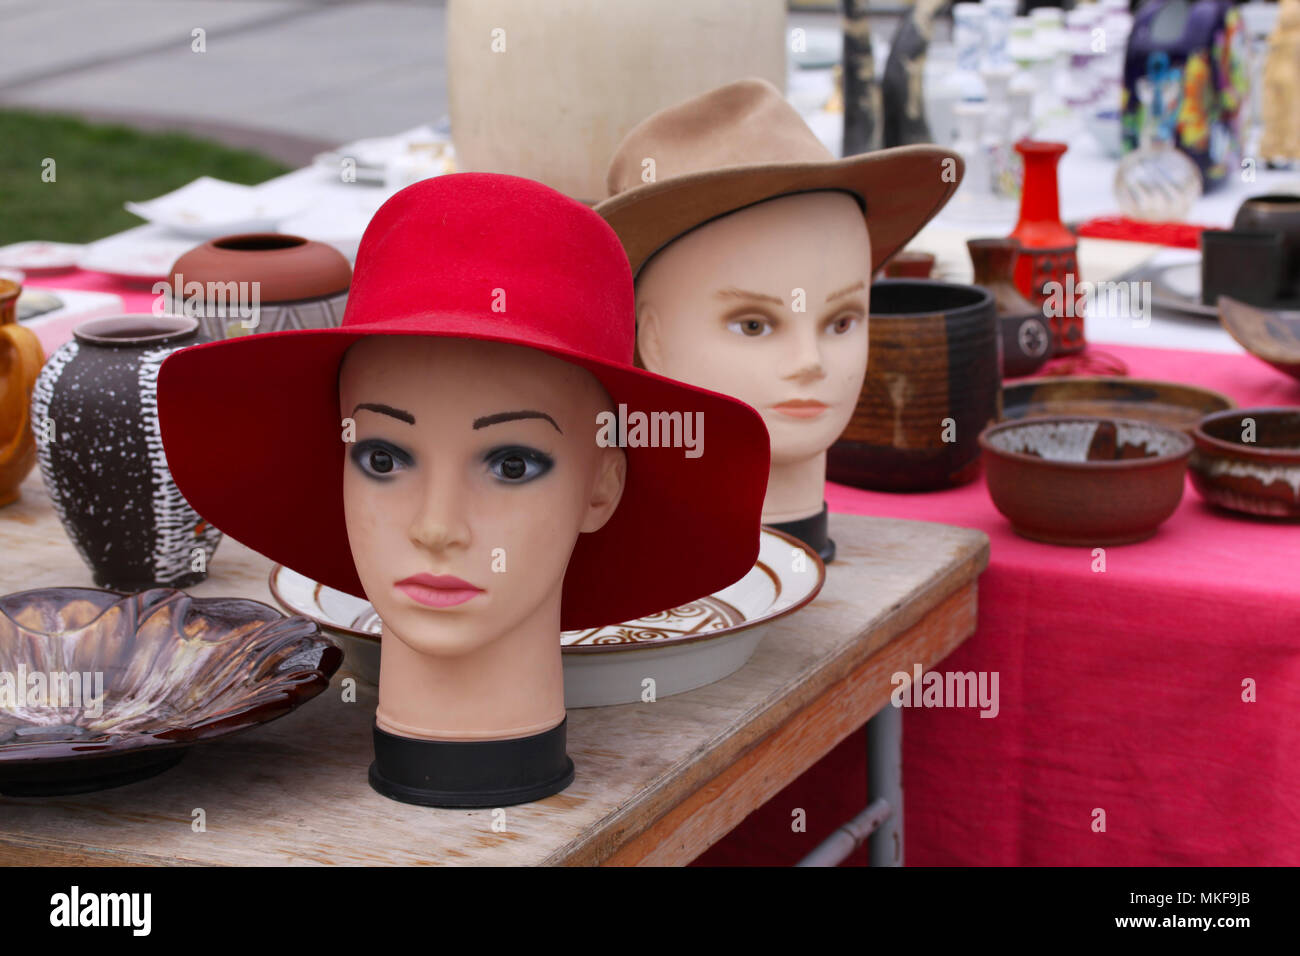 Scene from Flea market where people sell and buy used hats toys, clothes, pictures, kitchen ware and other vintage things Stock Photo